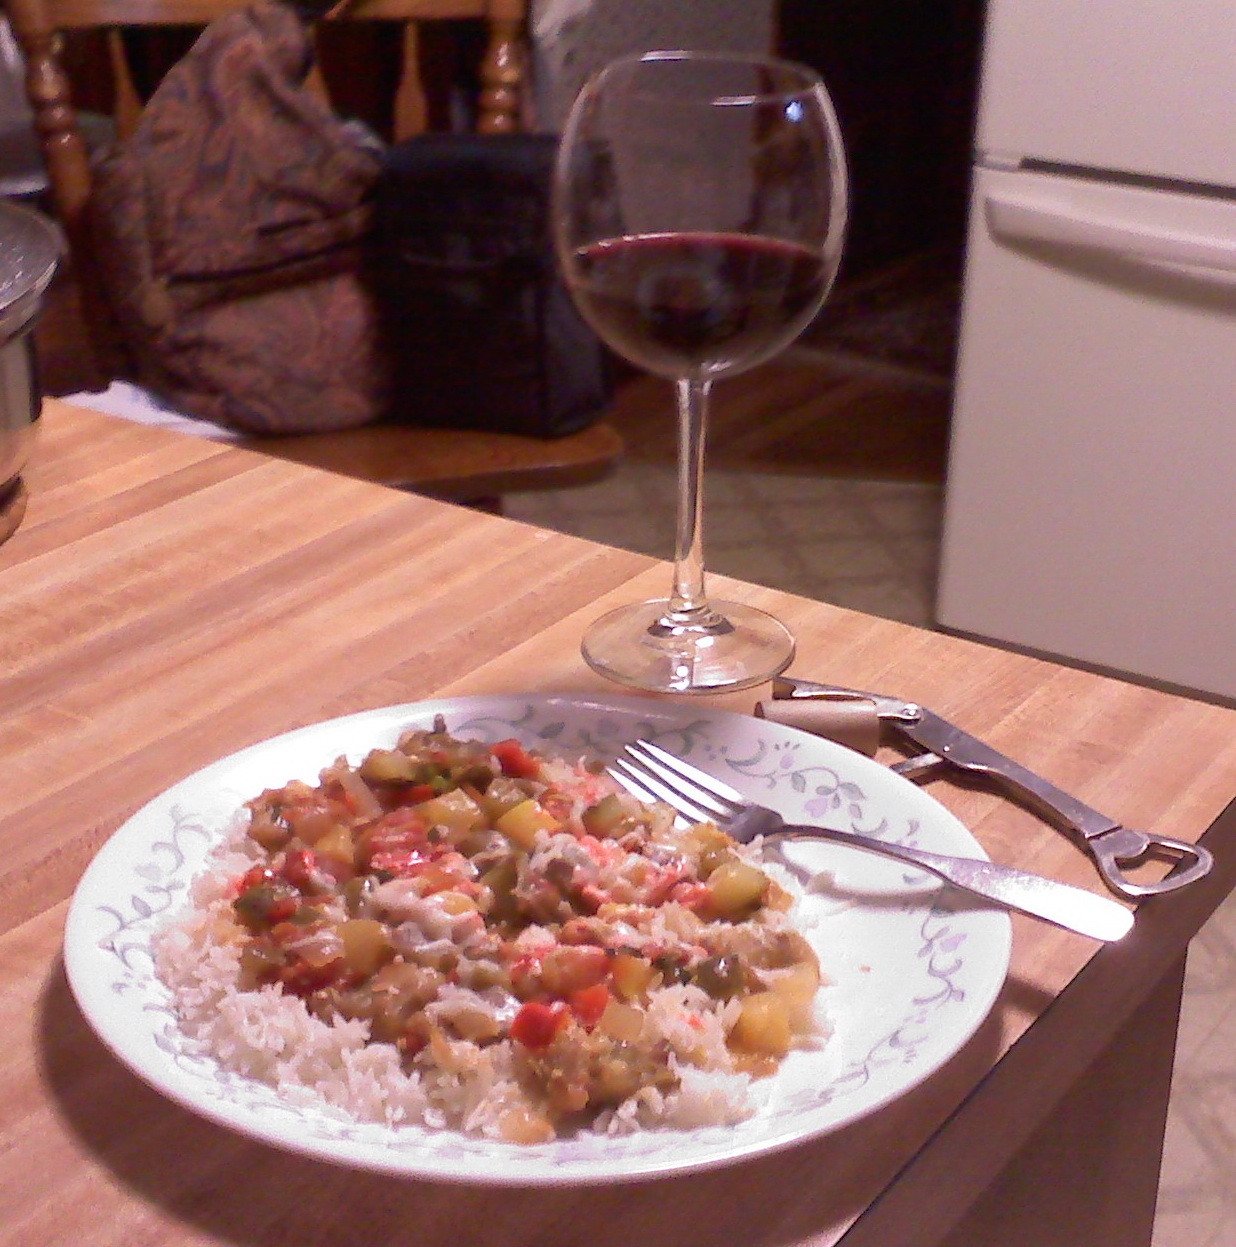 Home, Milford, NH :: White Rice, Ratatouille [ egg plant, zucchini, tomatoes, peppers, onion, garlic, basil, cheese, and a little Love ], Bully Hill Red Wine